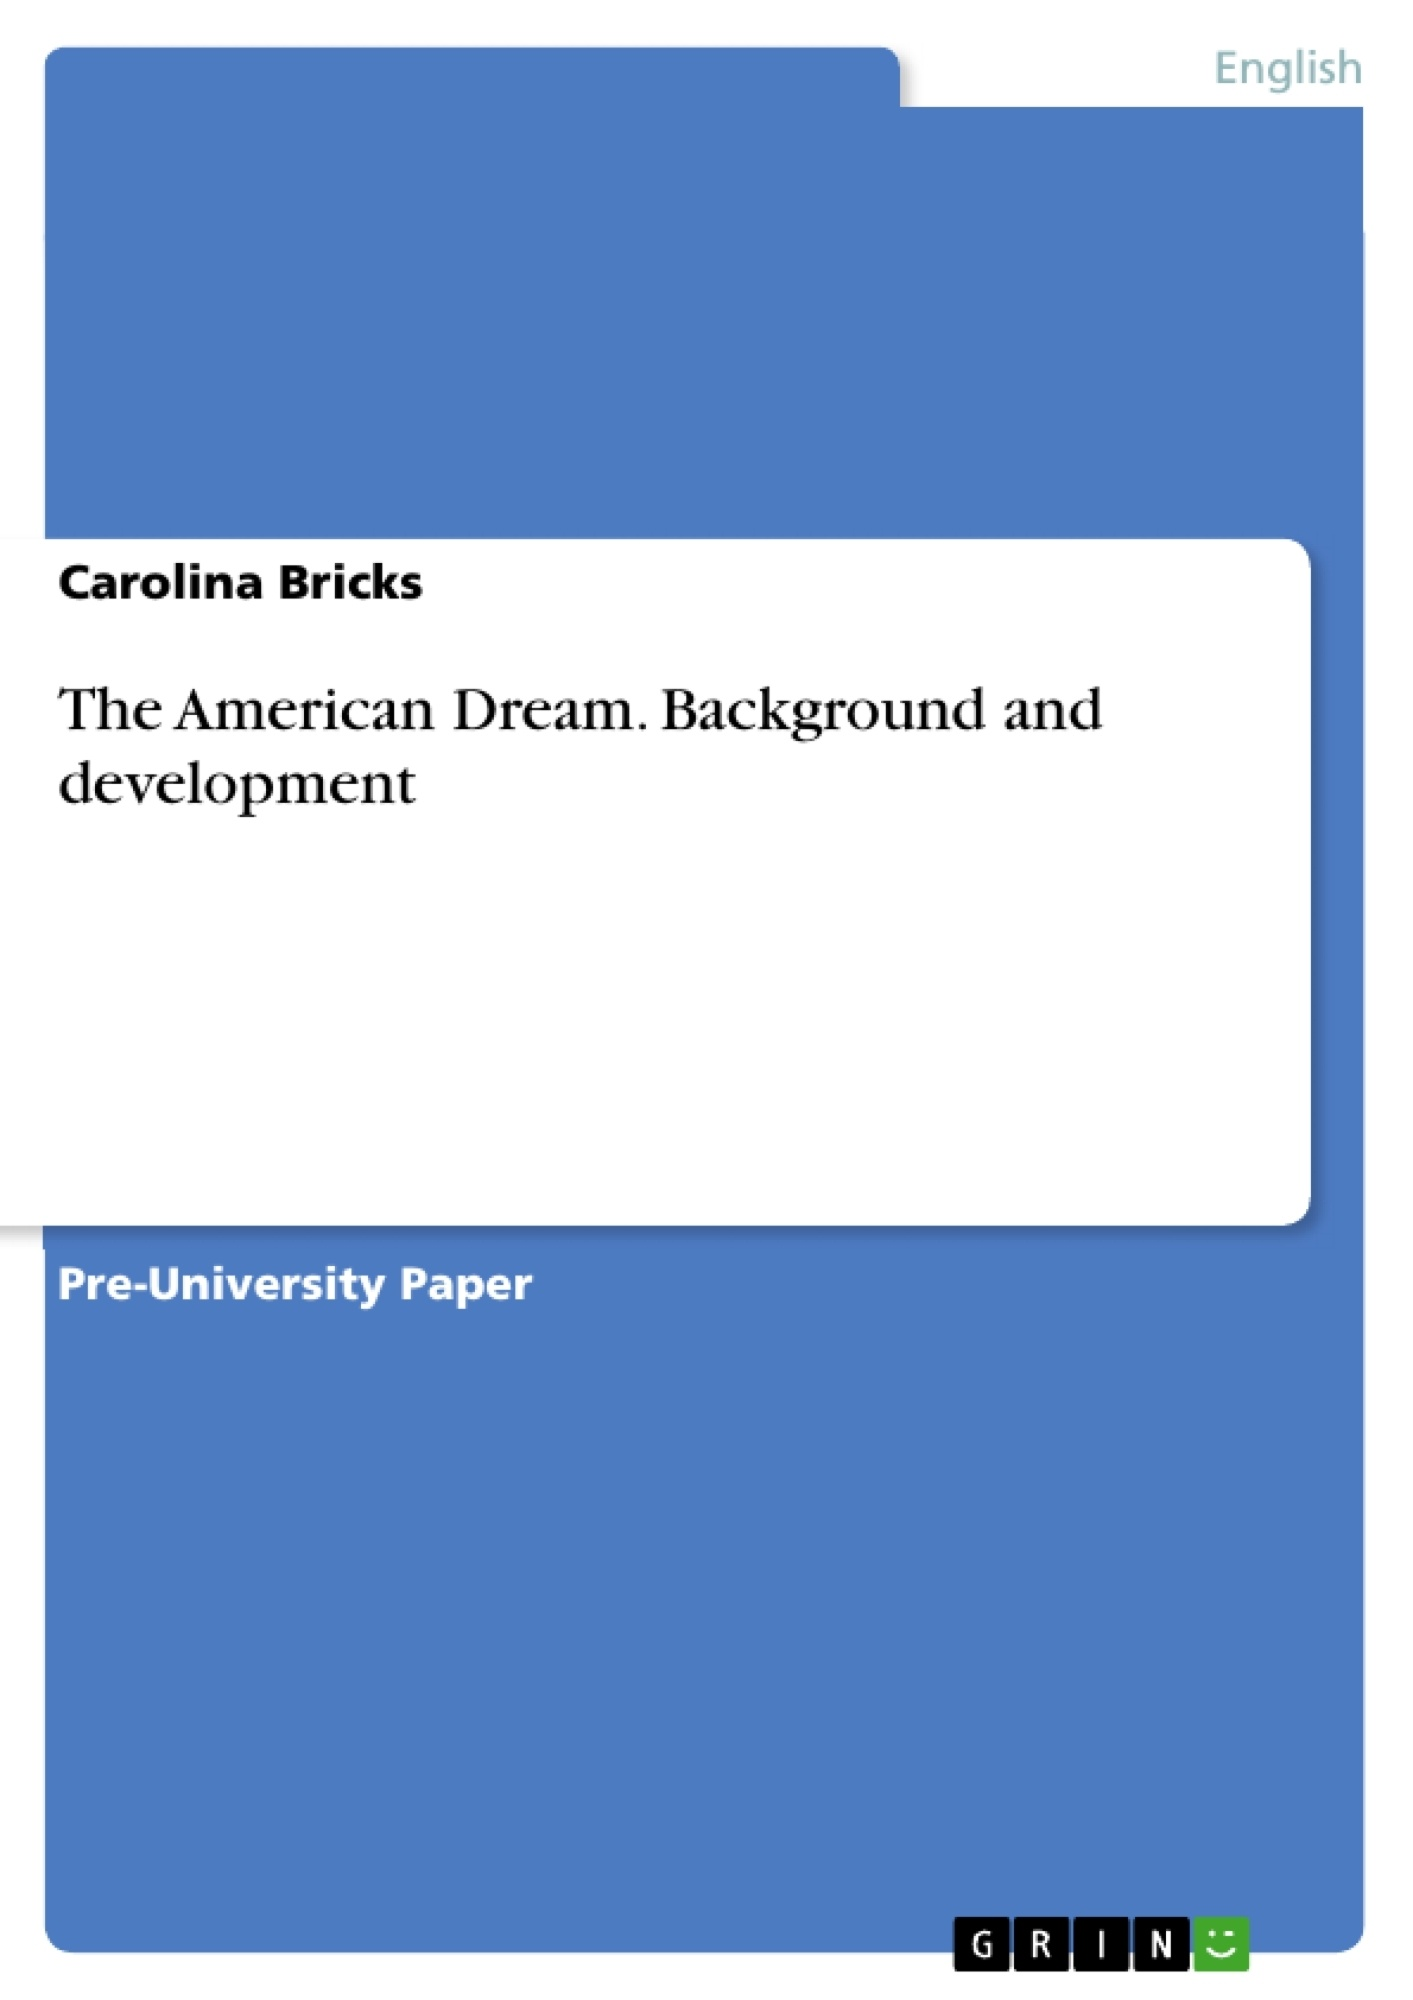 Title: The American Dream. Background and development